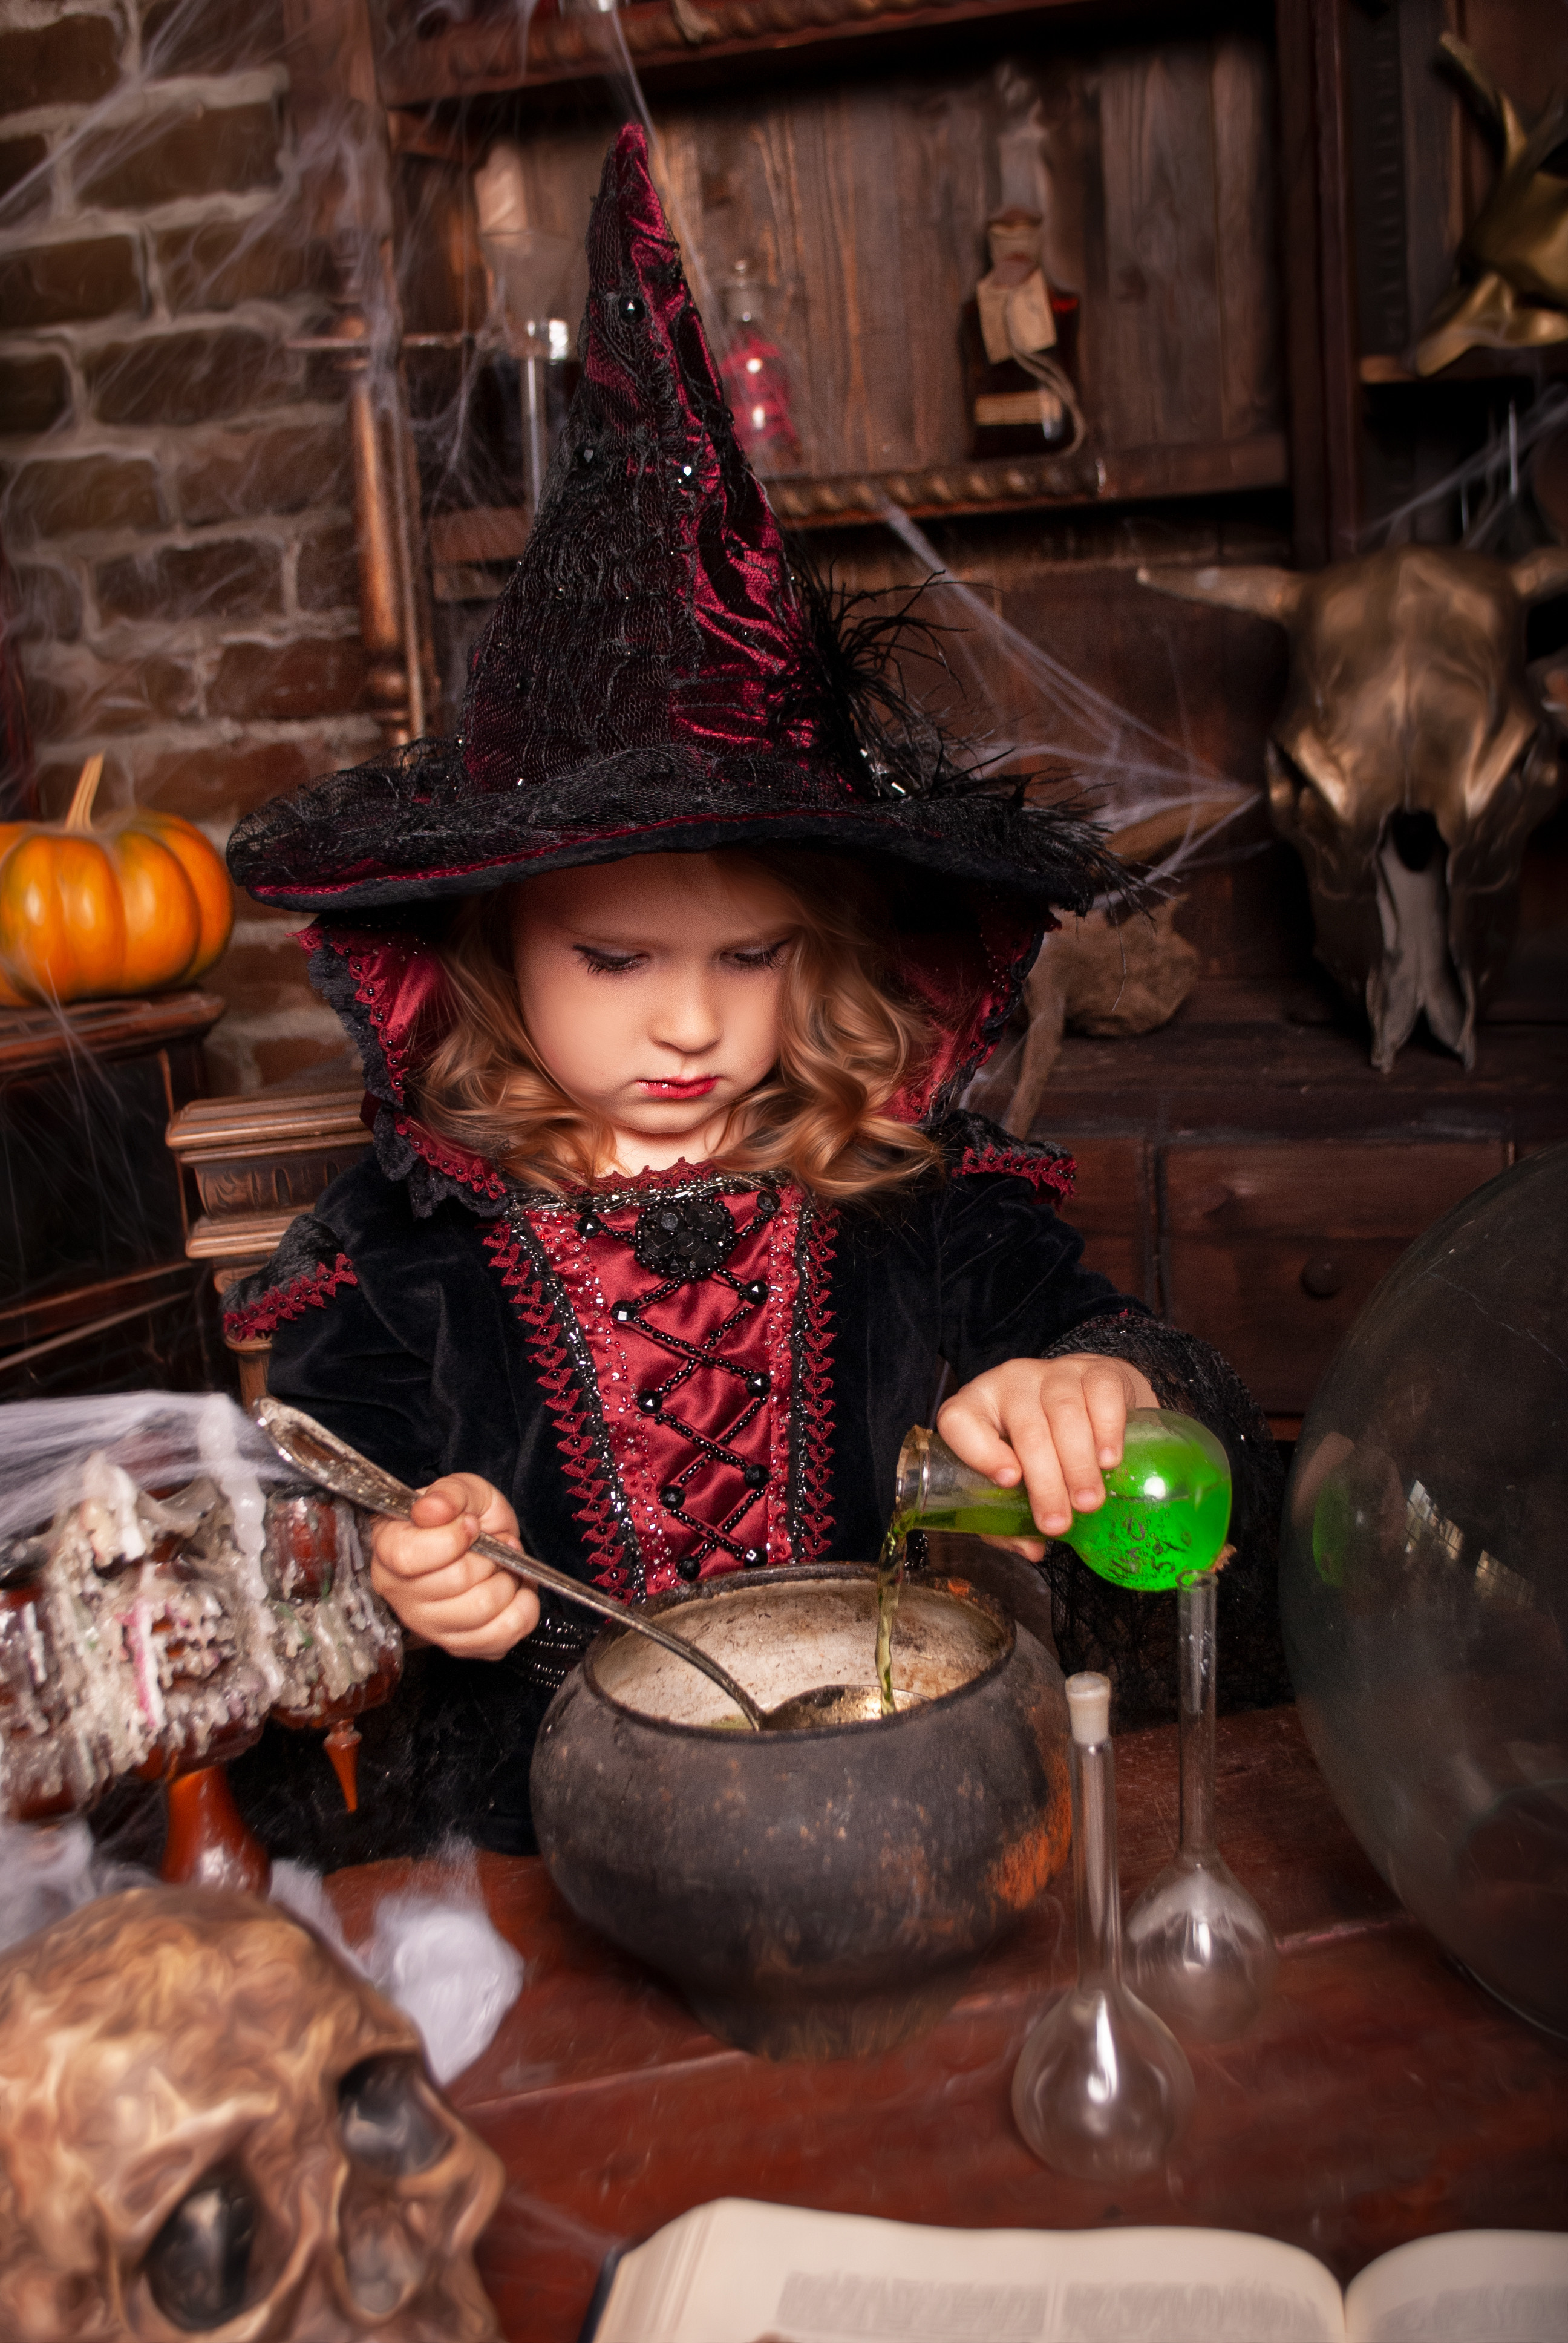 Potions & cauldrons - Beverley (age 5+)